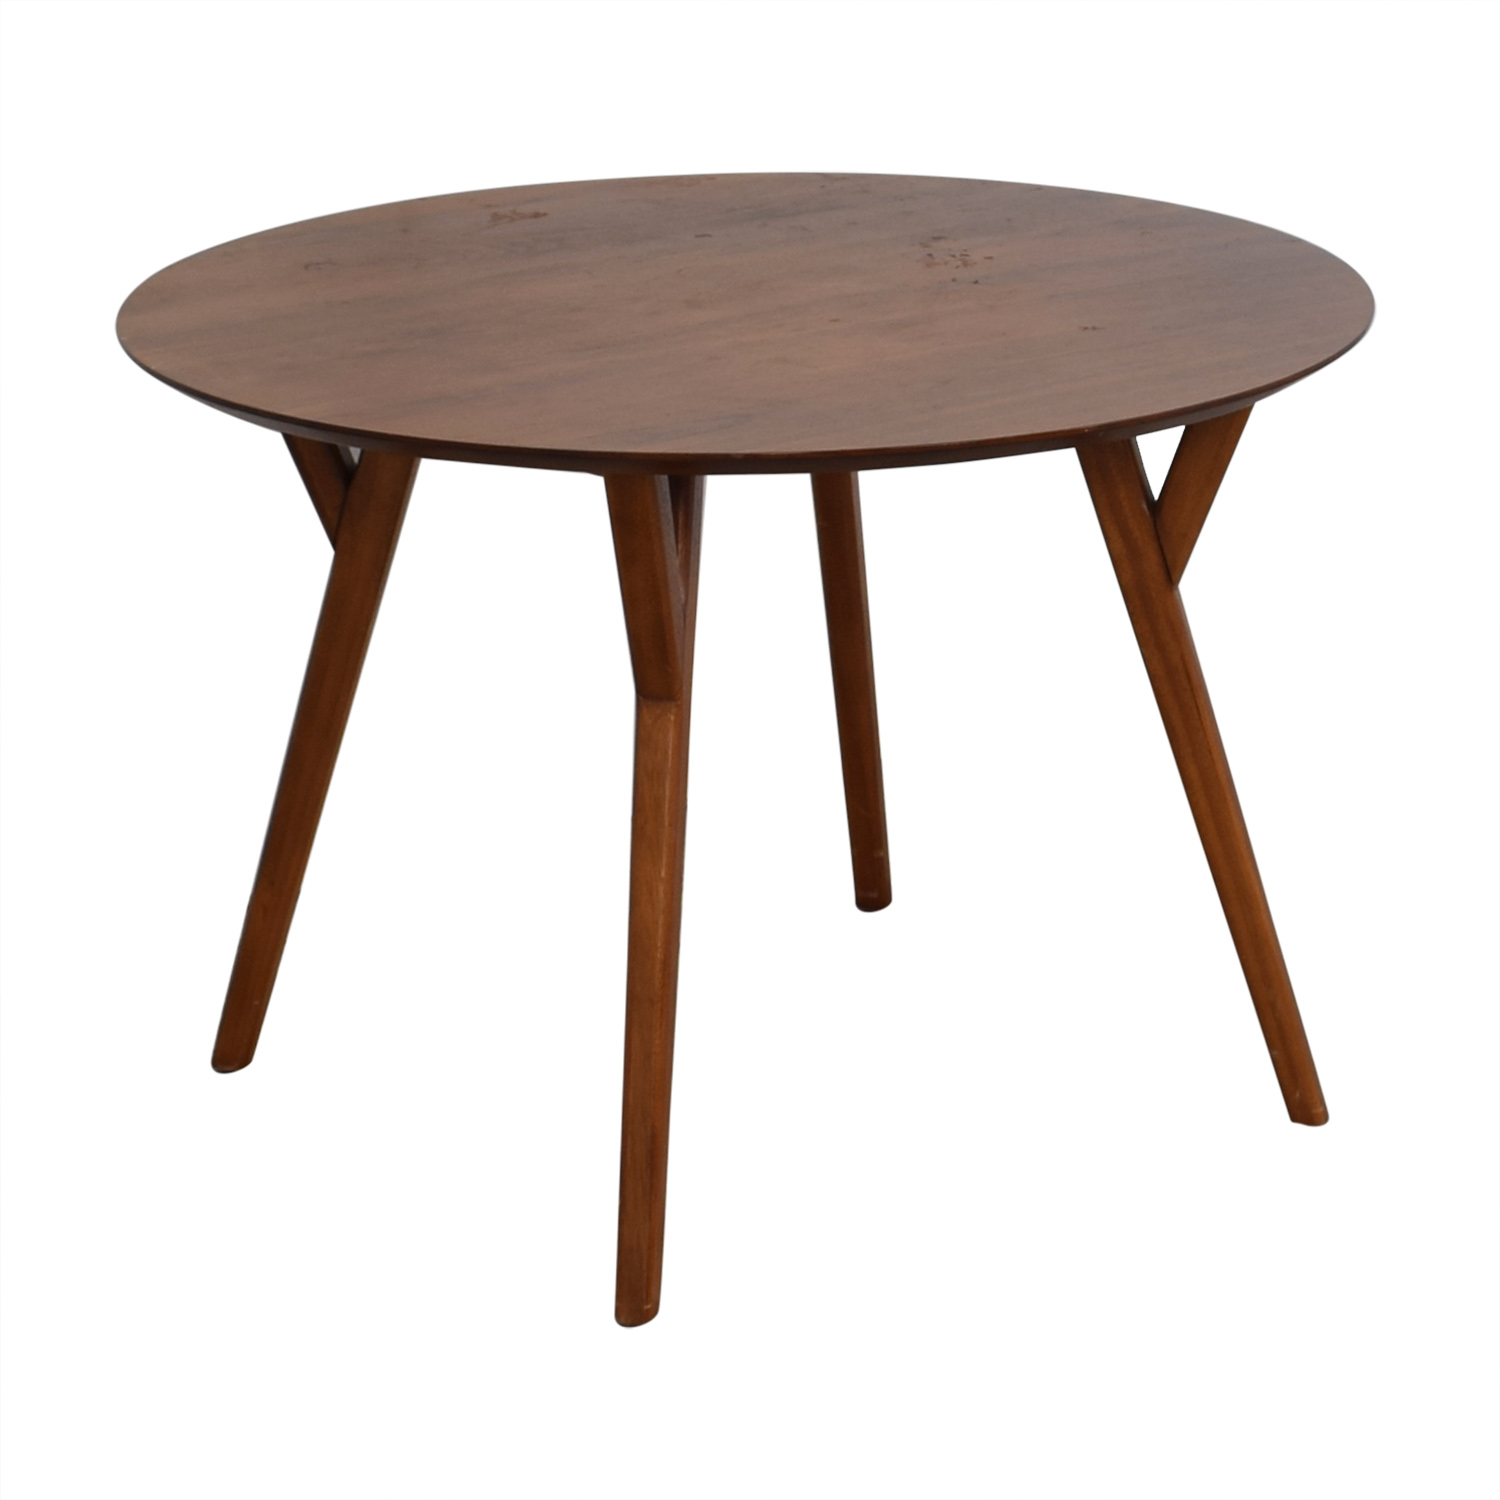 69 Off West Elm West Elm Round Dining Table Tables